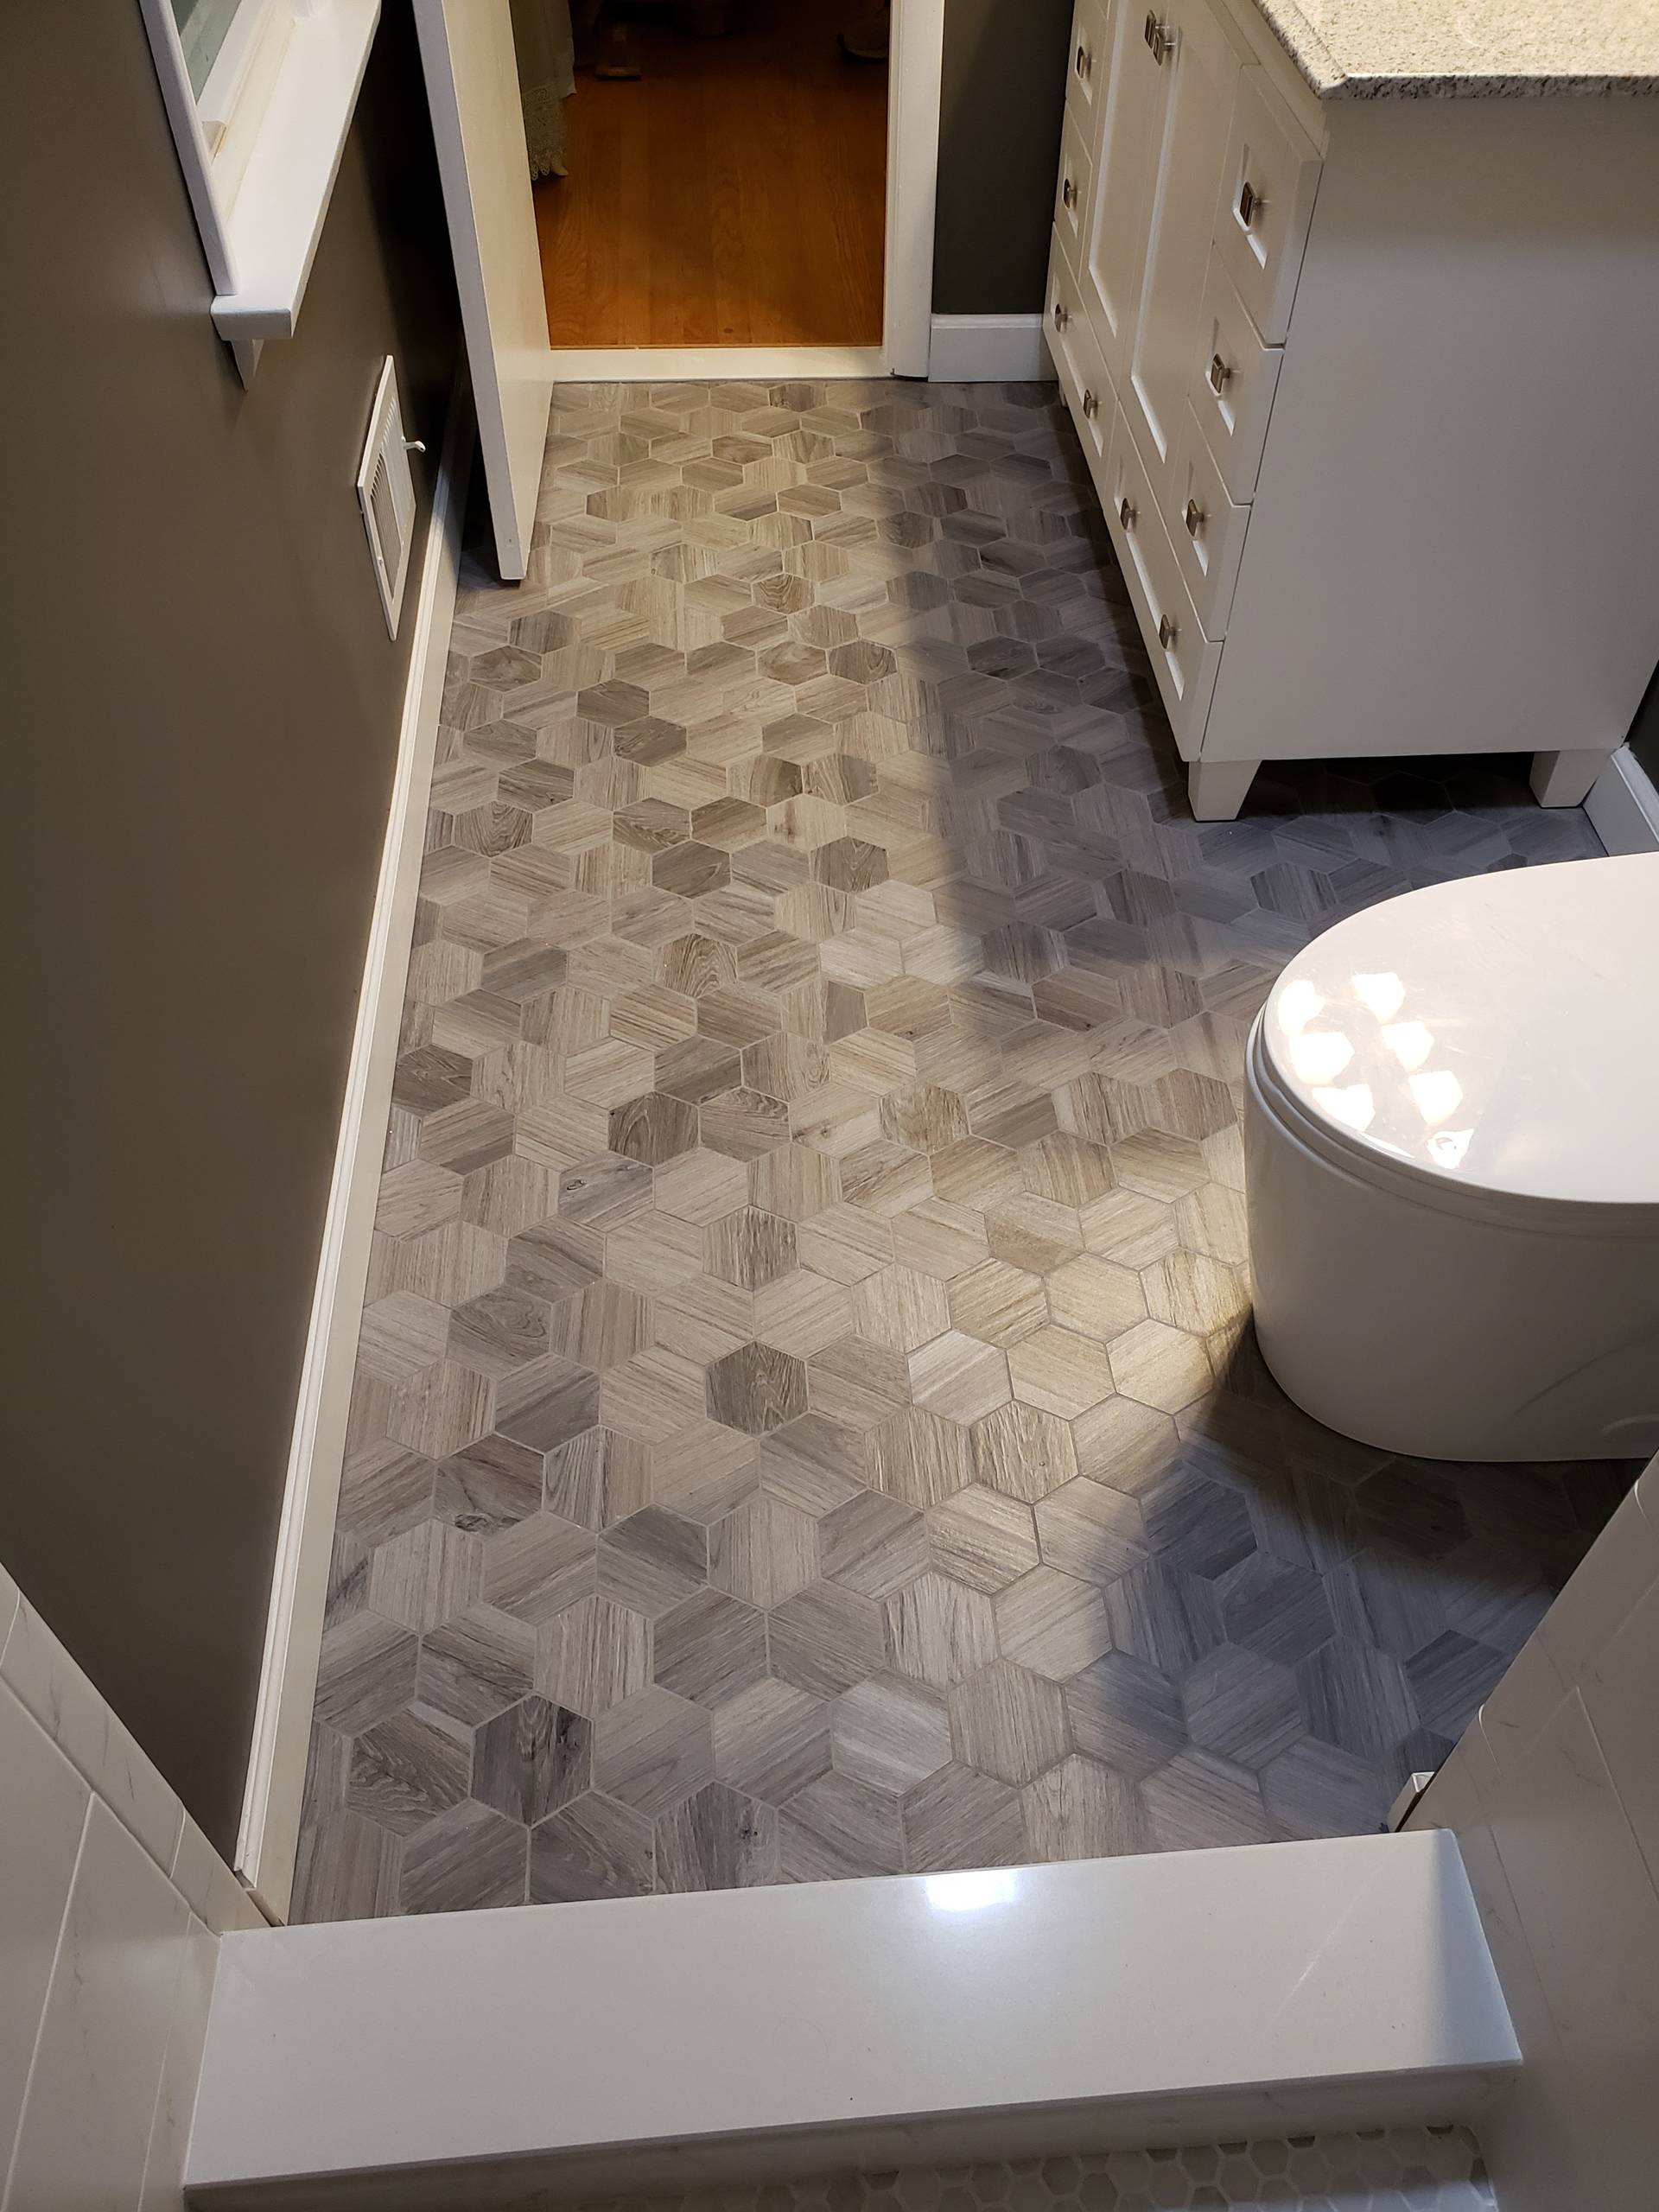 Complete Bathroom Makeover & Flooring- What a Difference!